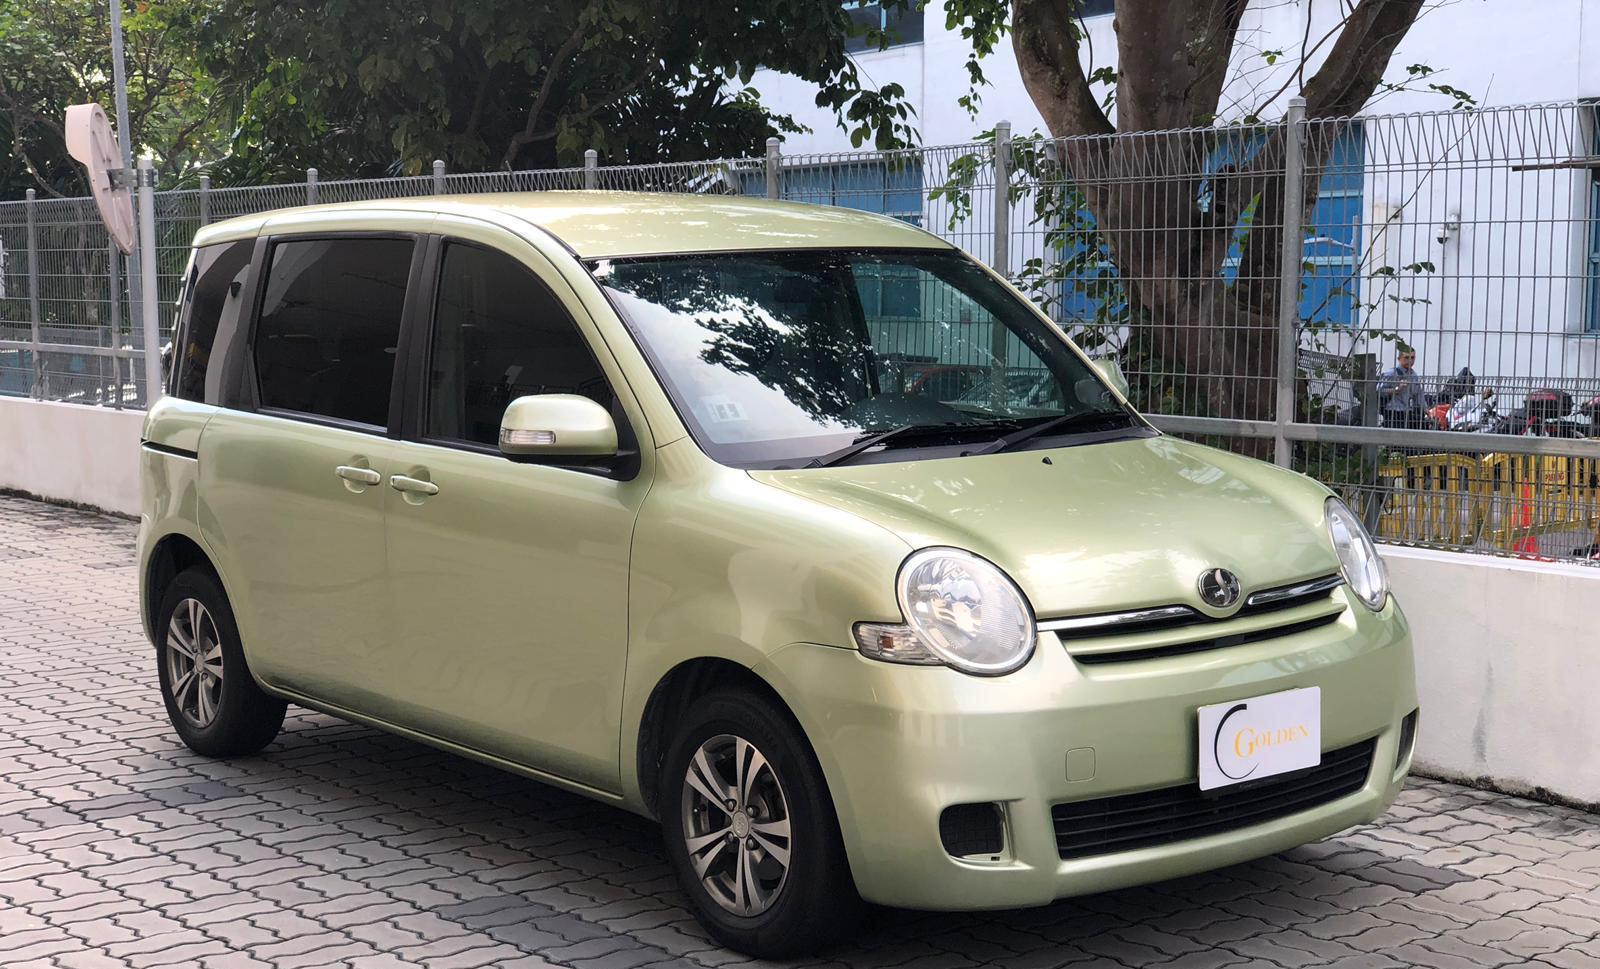 Toyota Sienta for rent Grab Rental Gojek Or Personal Use low price and CHEAPEST RENTAL